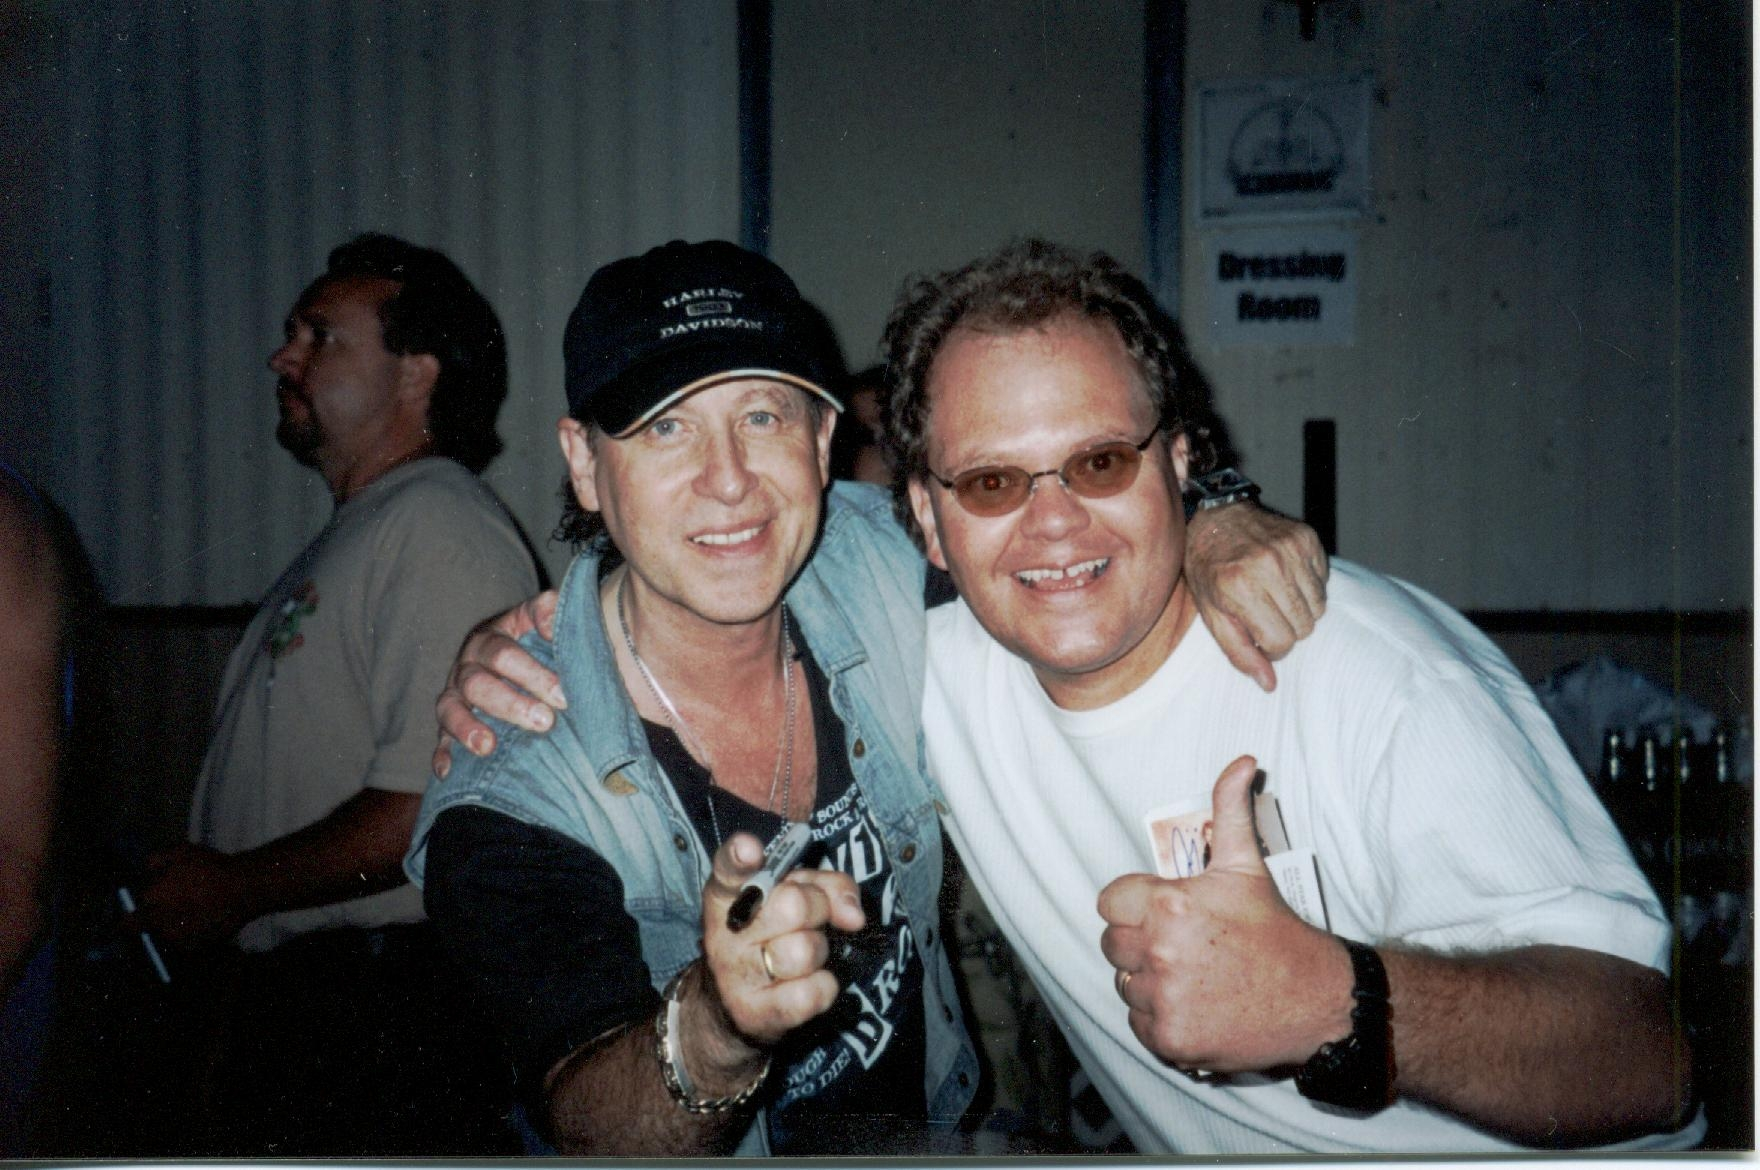 Klaus Meine of the scorpions and Chris Cady